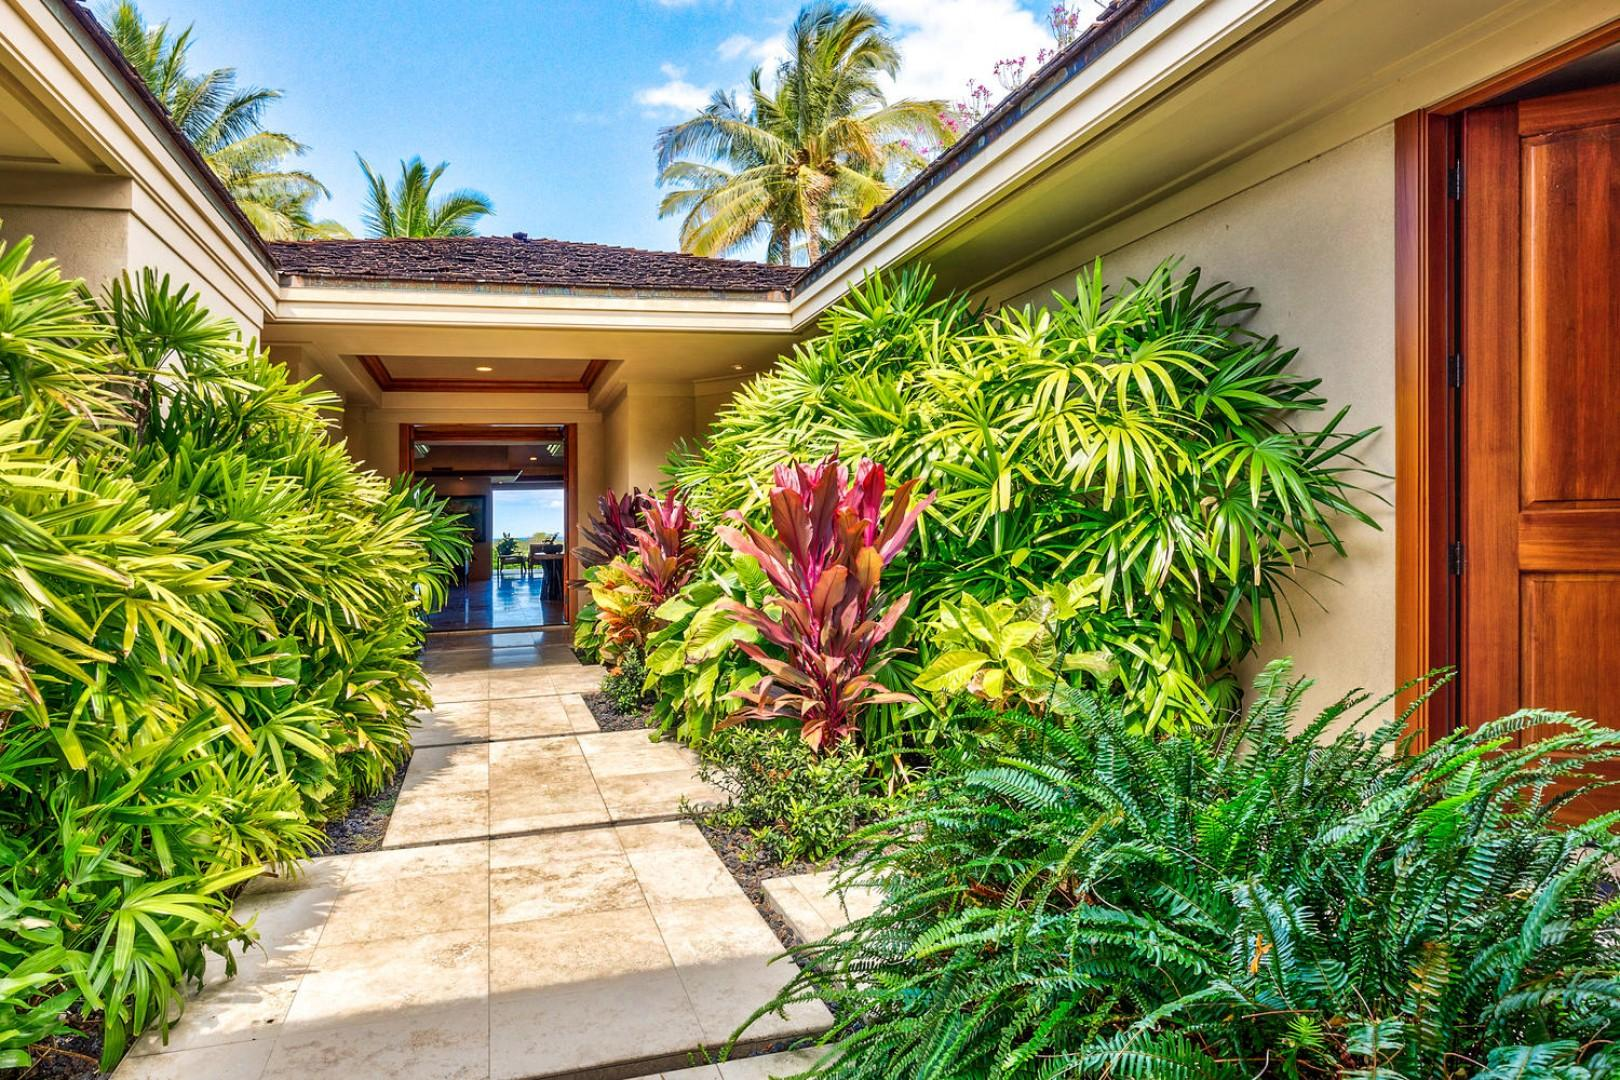 Private entryway with lush tropical landscaping.